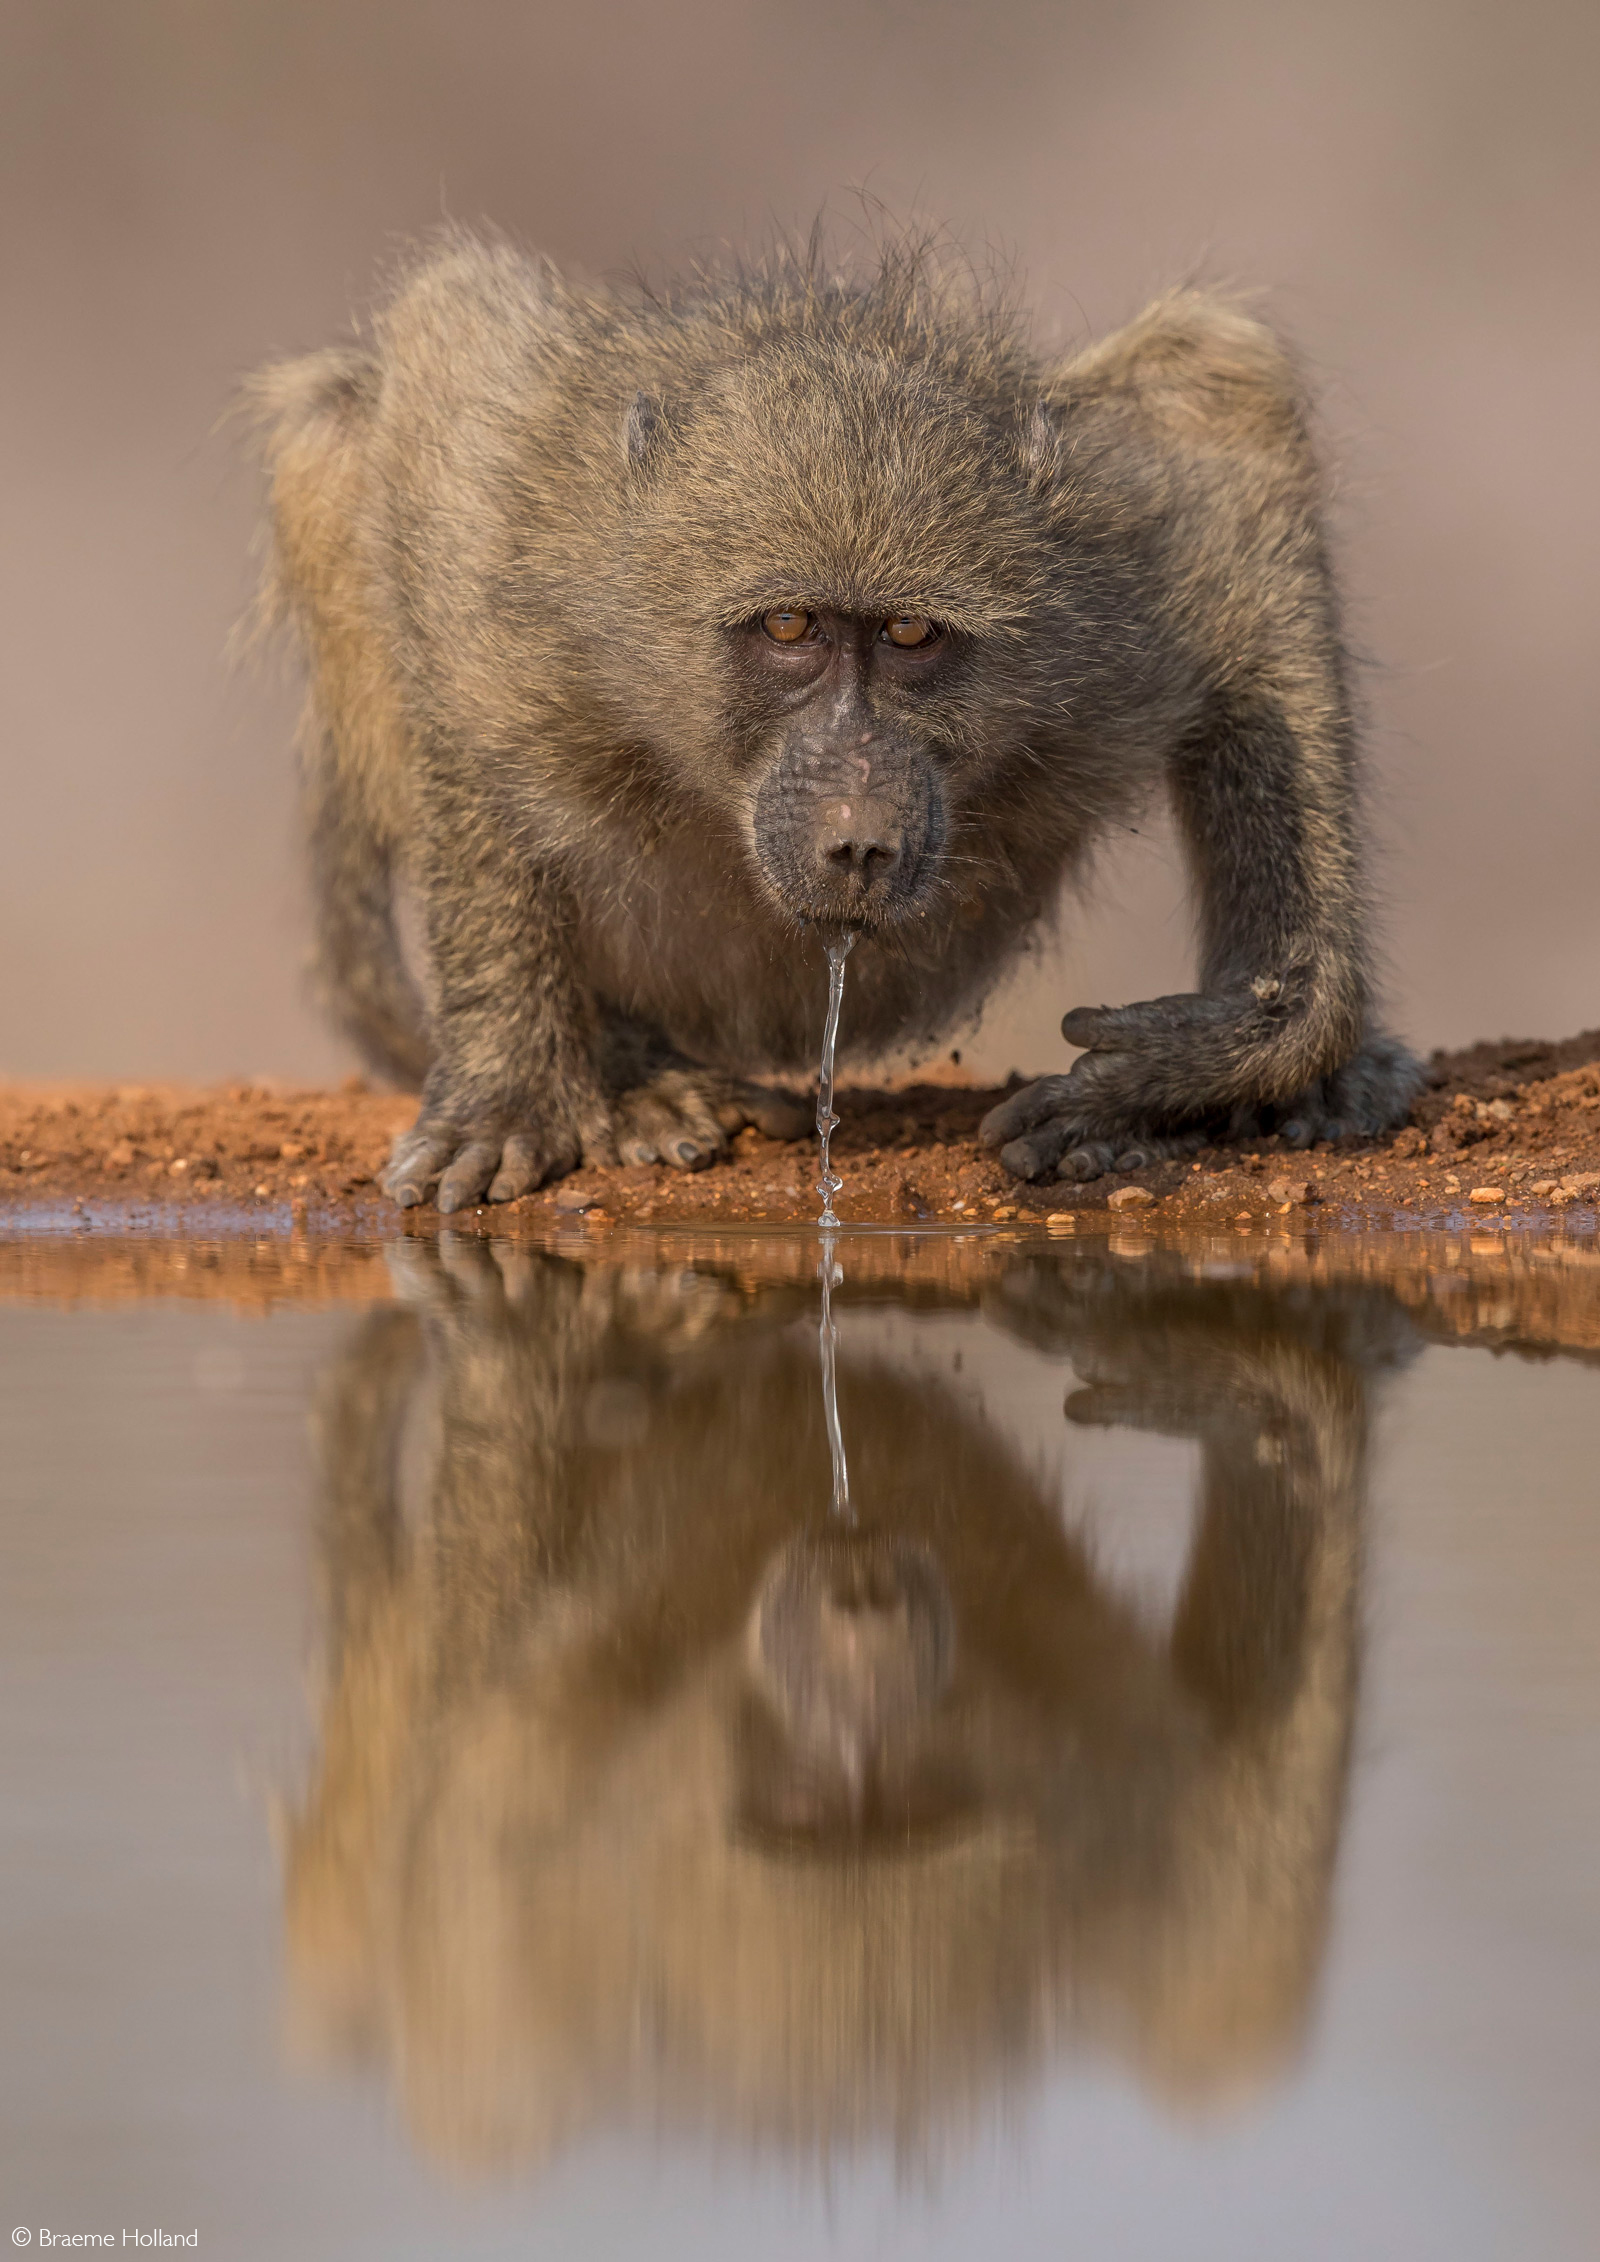 A young baboon quenches his thirst at a waterhole. Indlovu River Lodge Private Game Reserve, Greater Kruger, South Africa © Braeme Holland